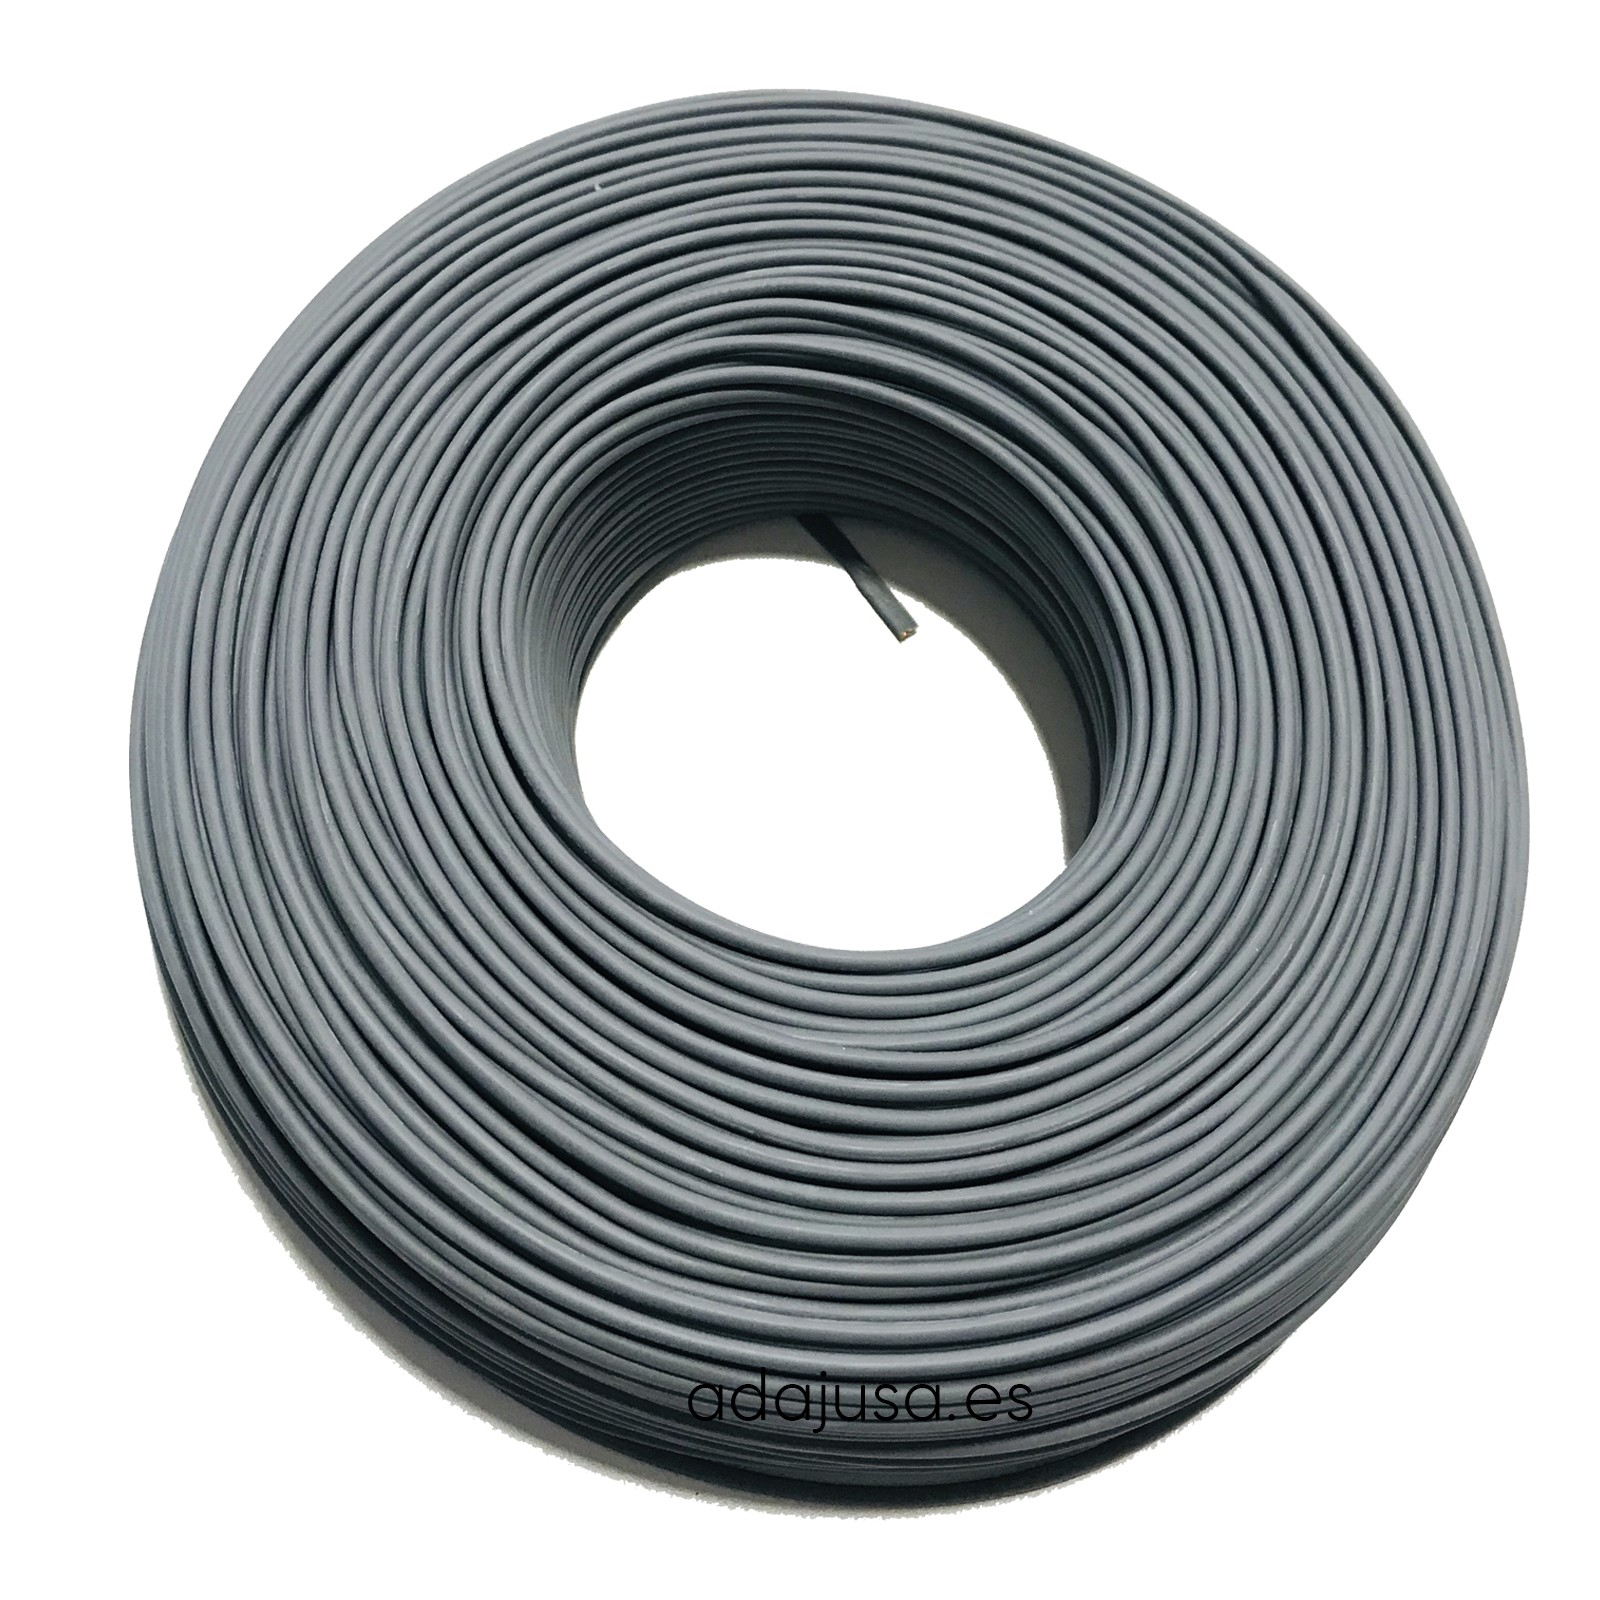 Manguera Libre De Halogenos 3x1 5 Cable Flexible Unipolar 1 5 Mm2 Color Gris